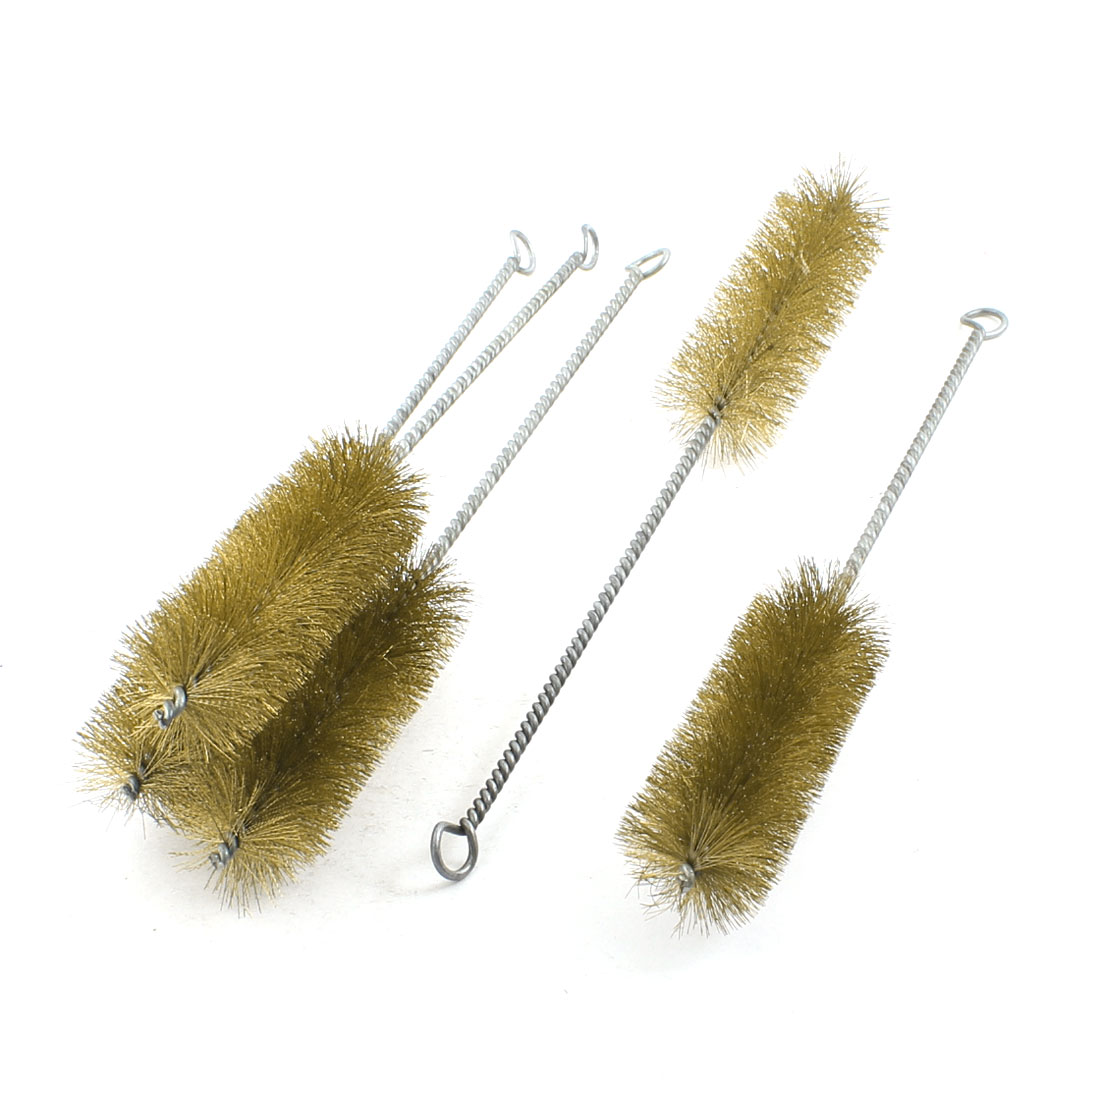 5 Pcs 40mm Diameter Steel Wire Tube Brush Cleaning Tool 32cm Length